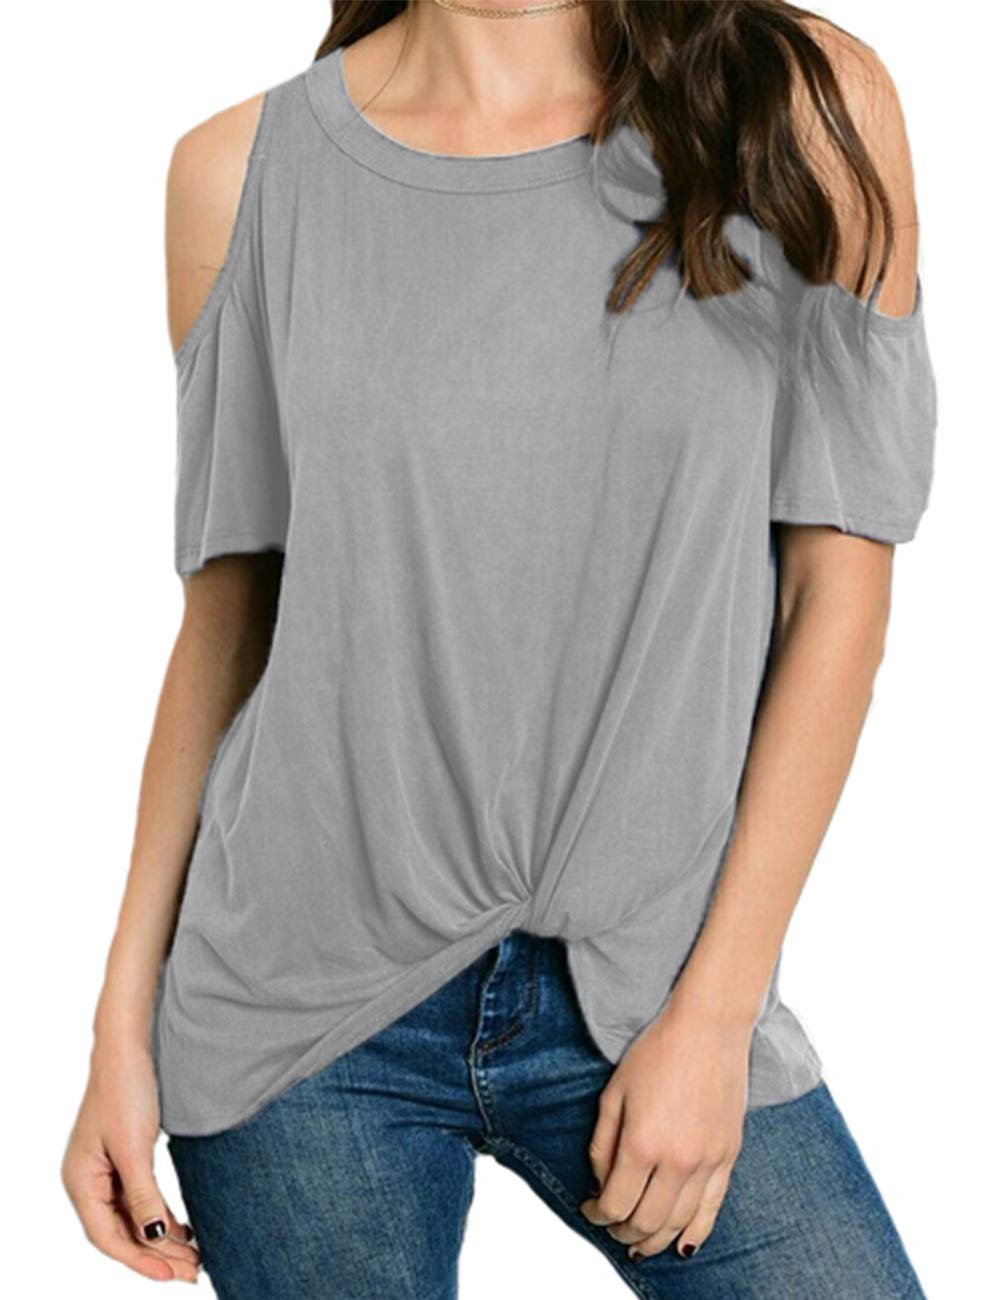 Women's Cold Shoulder Shirt Casual Short Sleeve T-Shirt